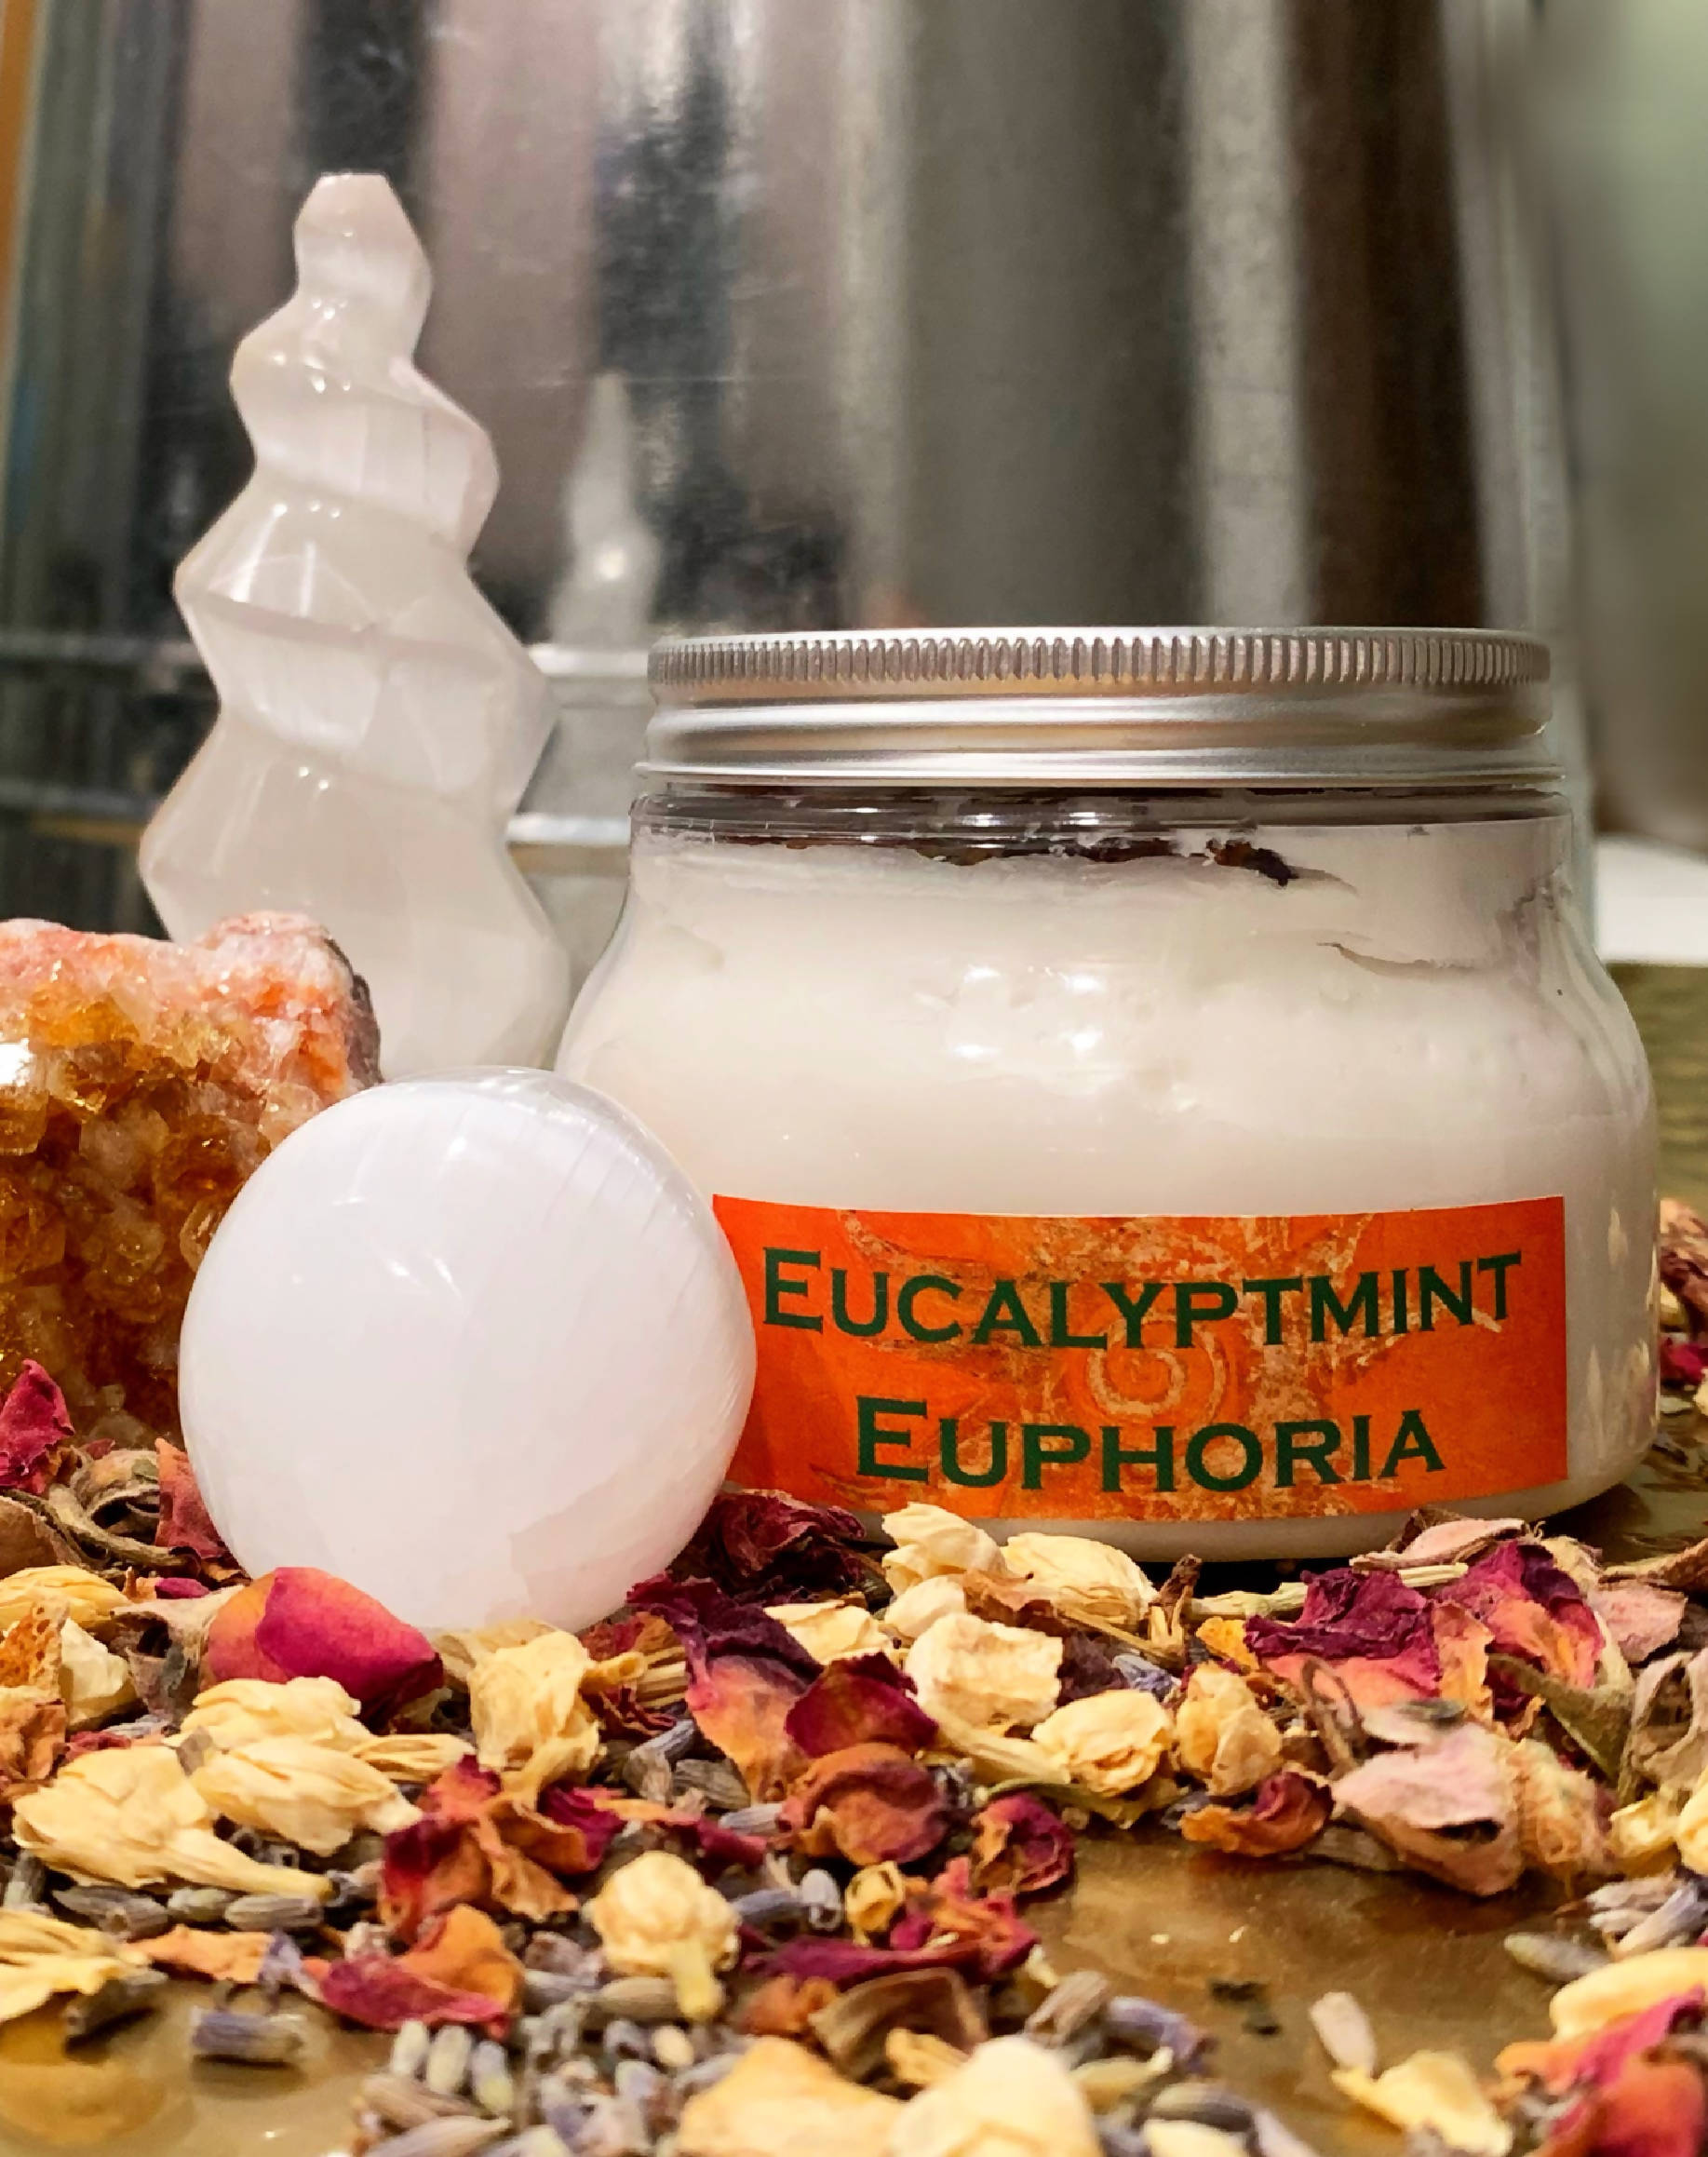 Eucalyptmint Euphoria Ultimate Conditioning Salve 8oz